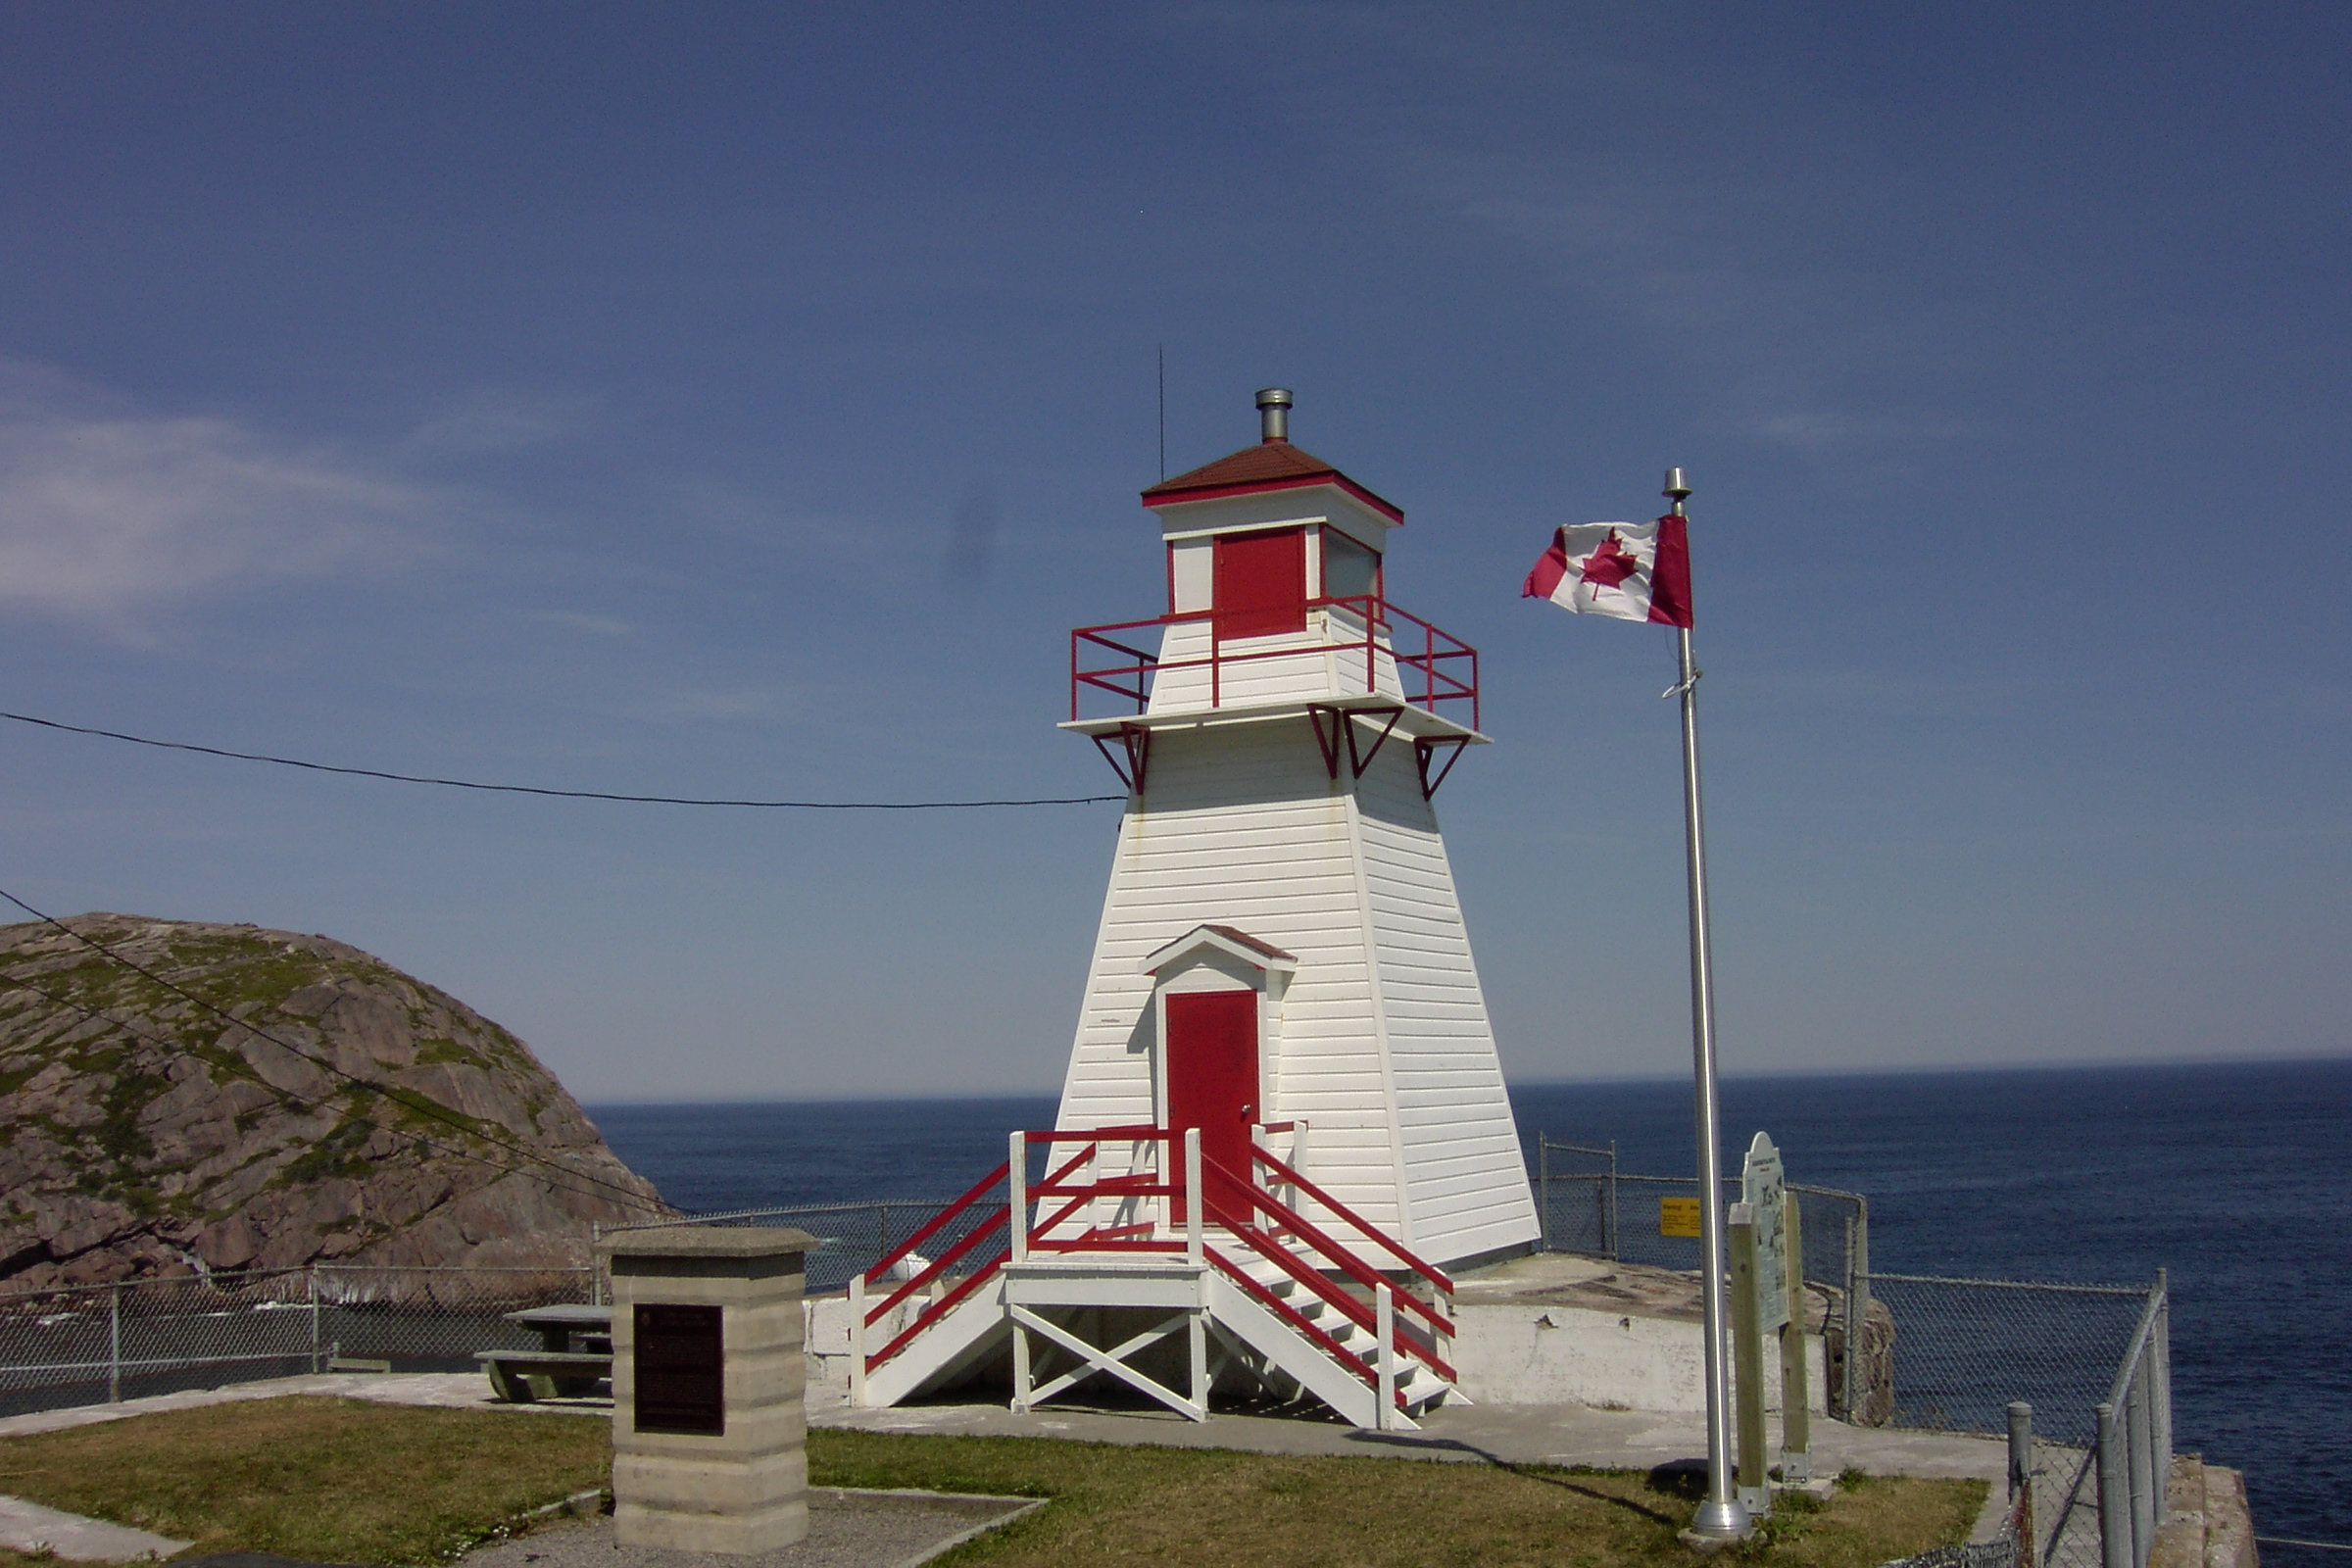 dating sites st johns nl Want newfoundland dating tips let elitesingles match with two unesco world heritage sites providing a window into the past and with vibrant cities like st john.